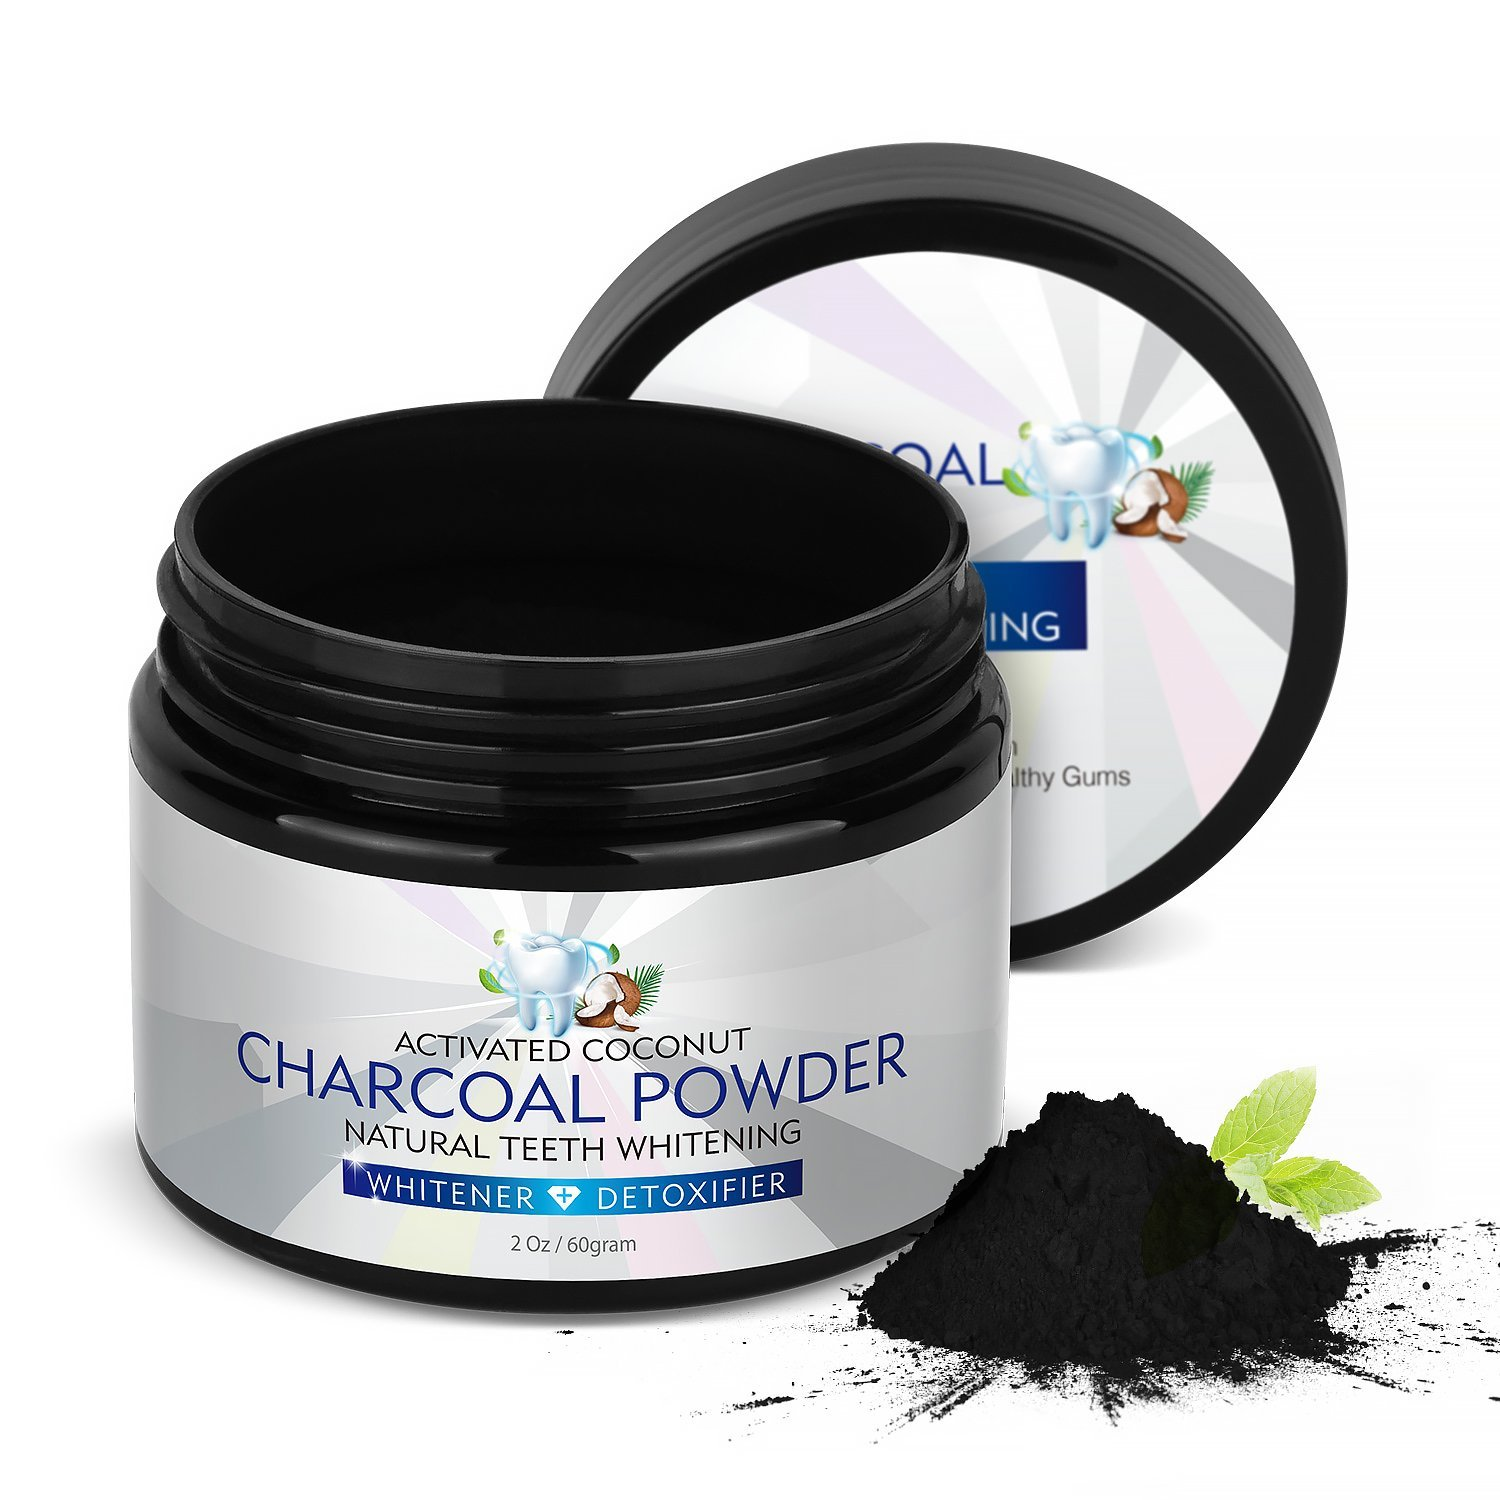 Teeth Whitening Charcoal Powder,Natural Charcoal Activated Charcoal Teeth Whitener Powder Organic Coconut Charcoal Toothpaste 2Oz